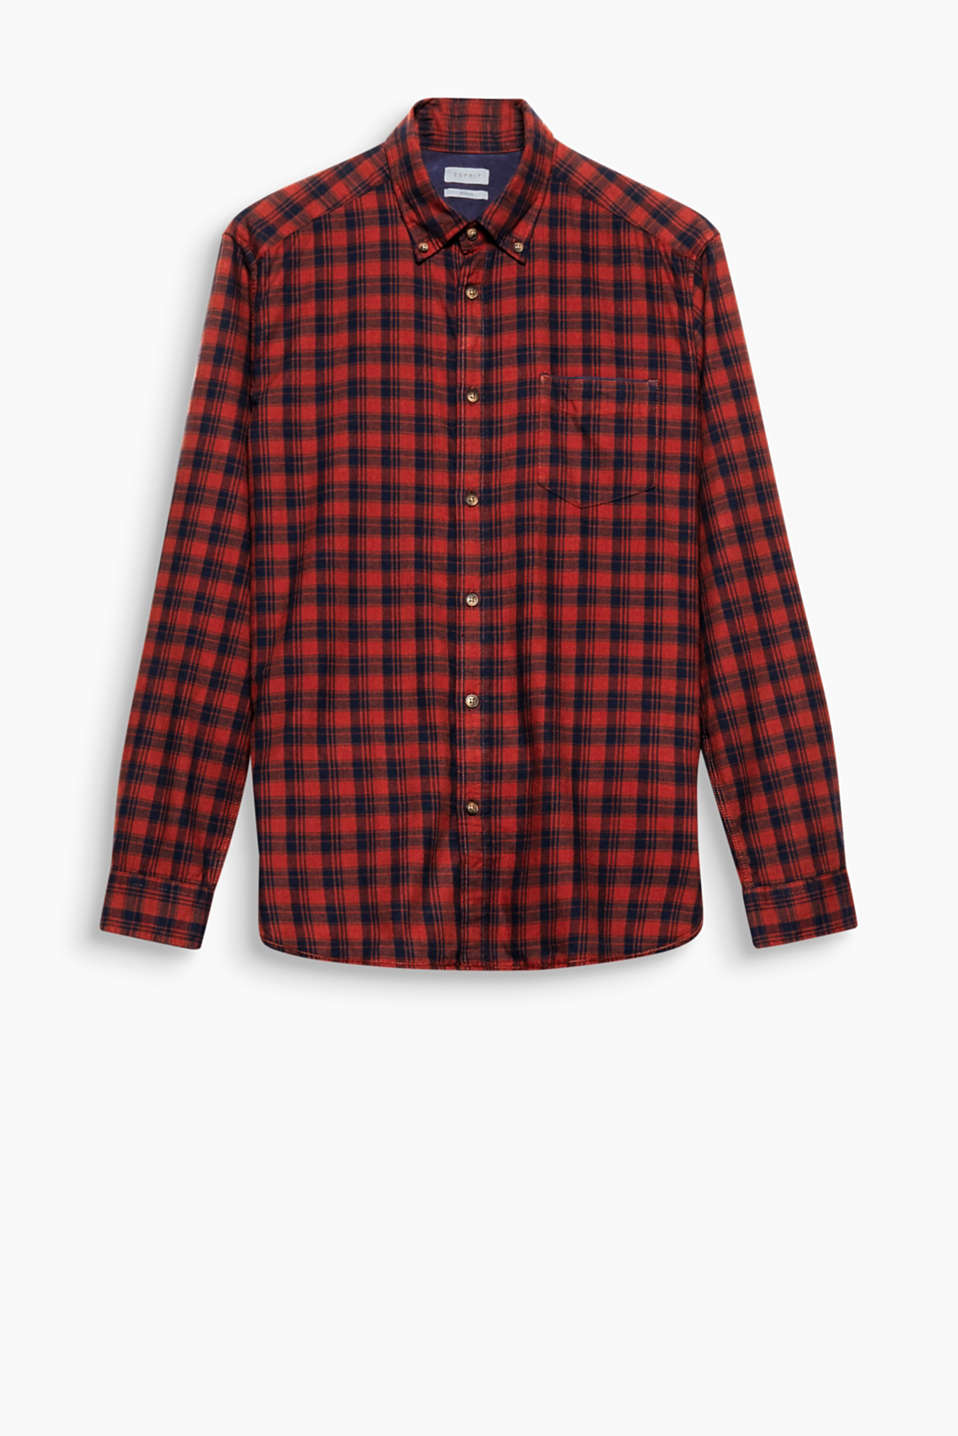 Be it a rustic or grunge look: the Prince of Wales checks make this shirt open to lots of styling ideas.